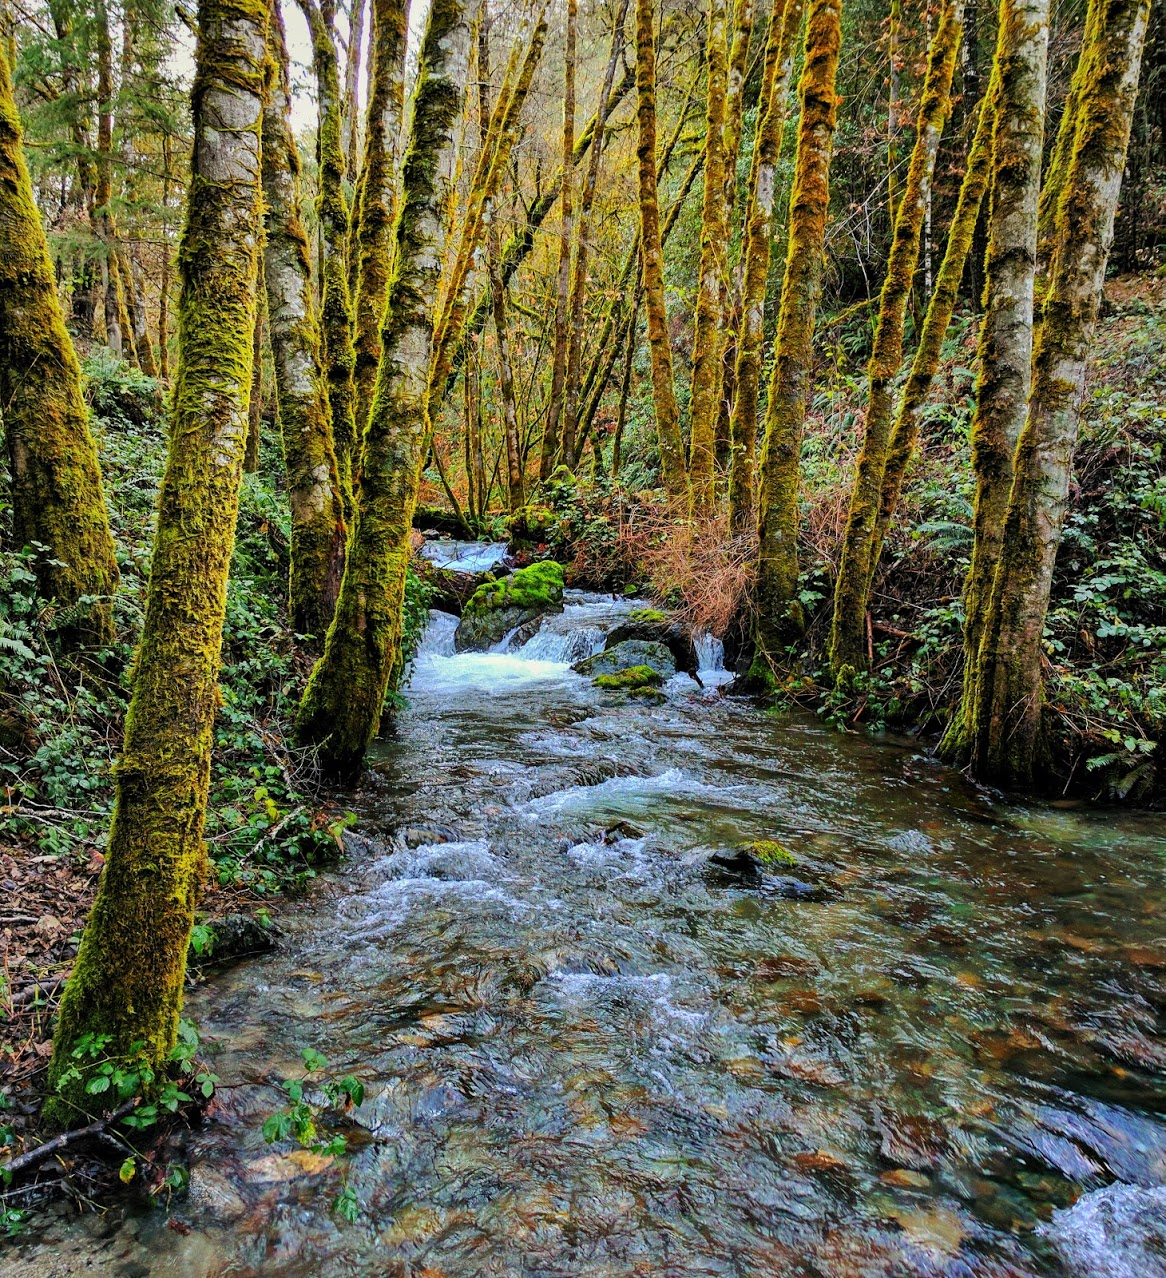 In the Spring, the creeks of the Klamath Forest flow high and cold